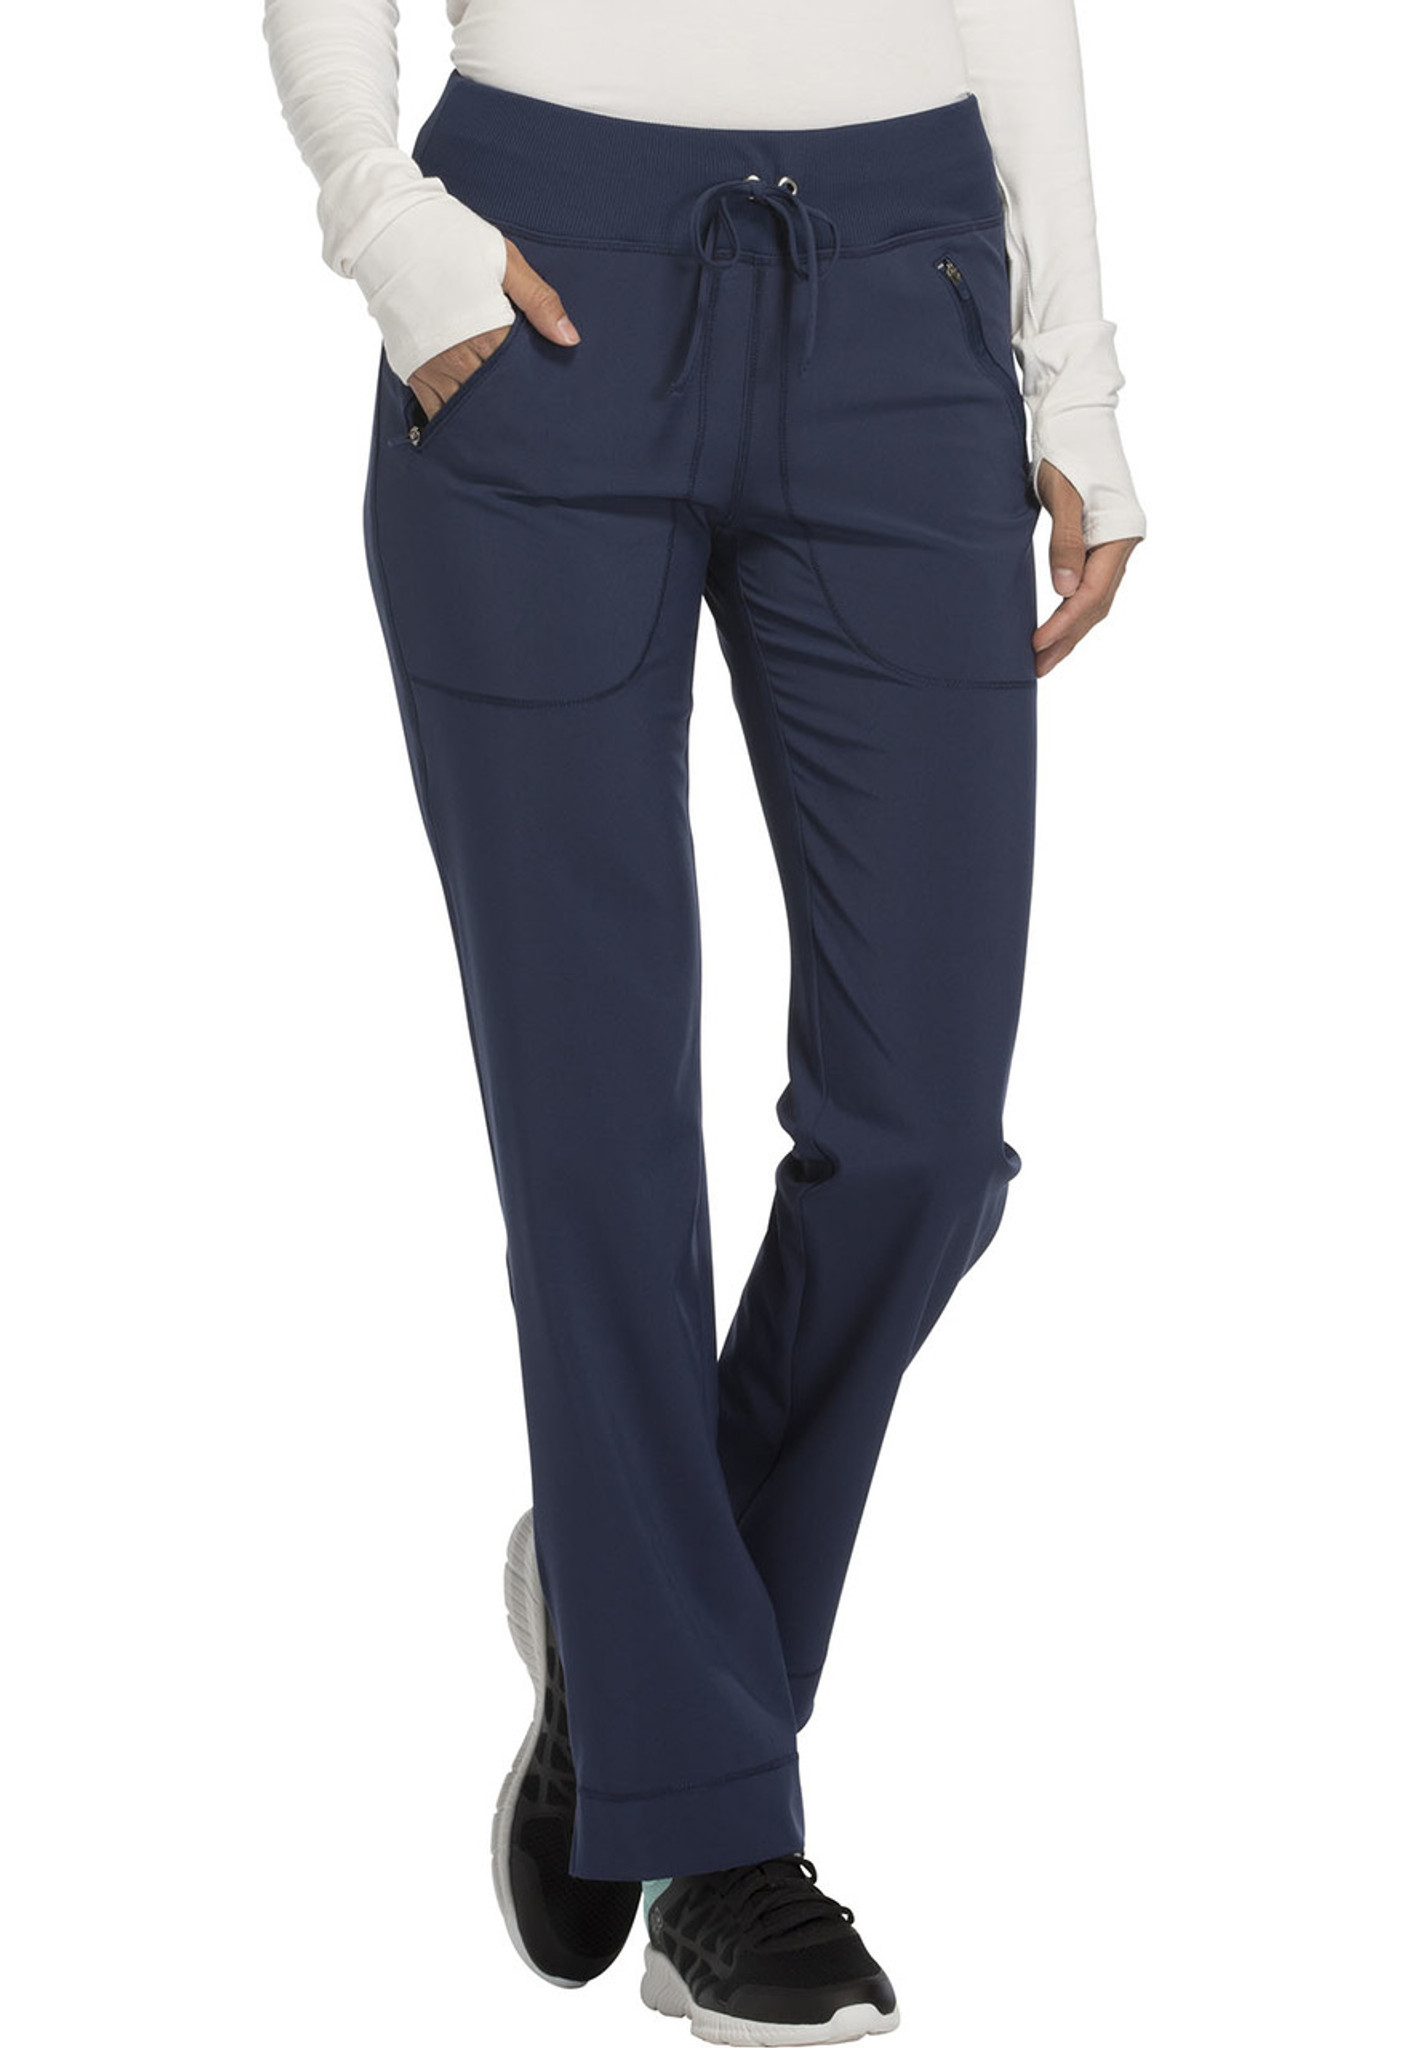 ea300053cac Cherokee Infinity CK100A Women's Mid Rise Tapered Leg Drawstring Scrub Pants  (CK100A) ...